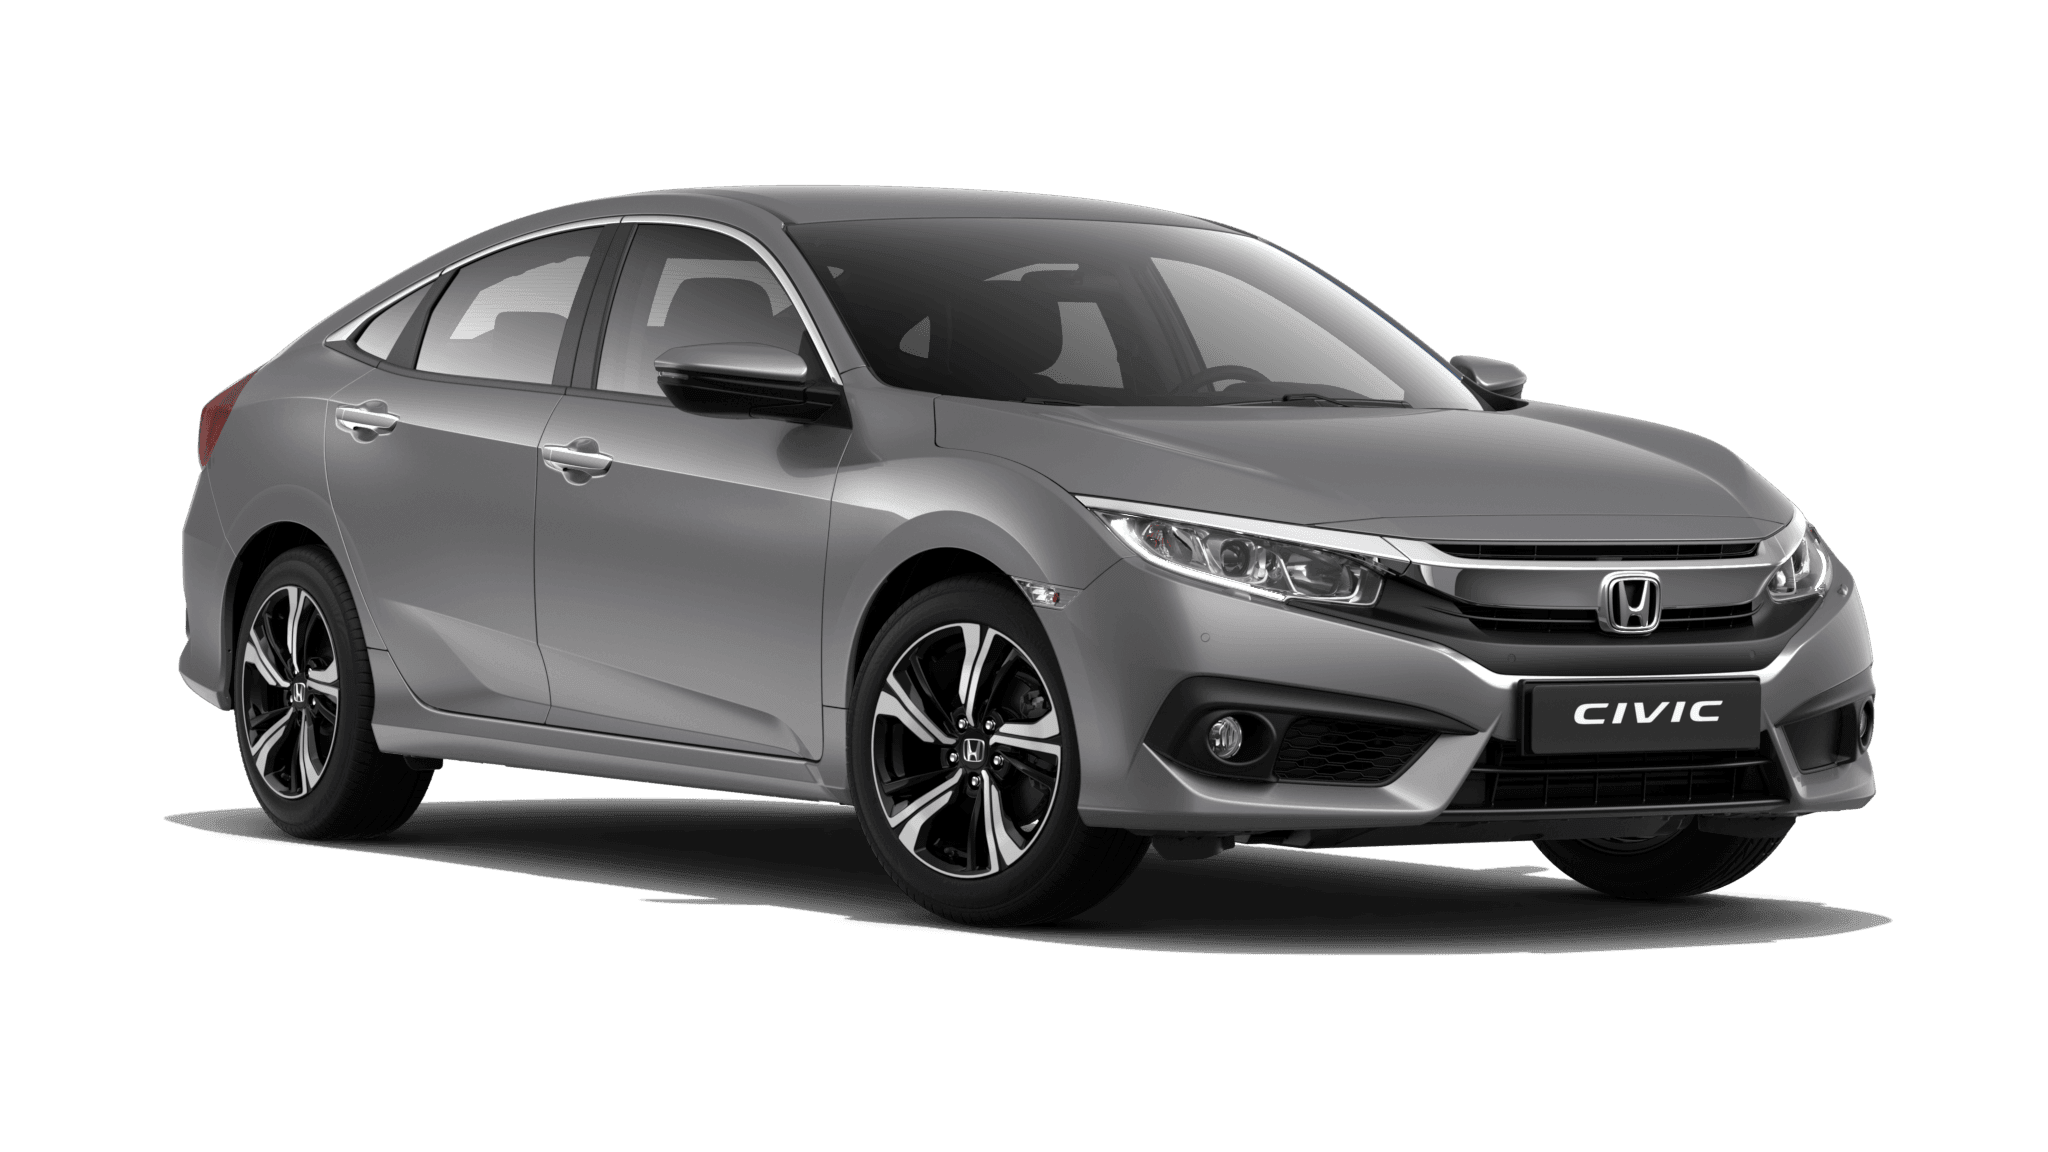 civic-sr-4door-lunar-silver-metallic.png